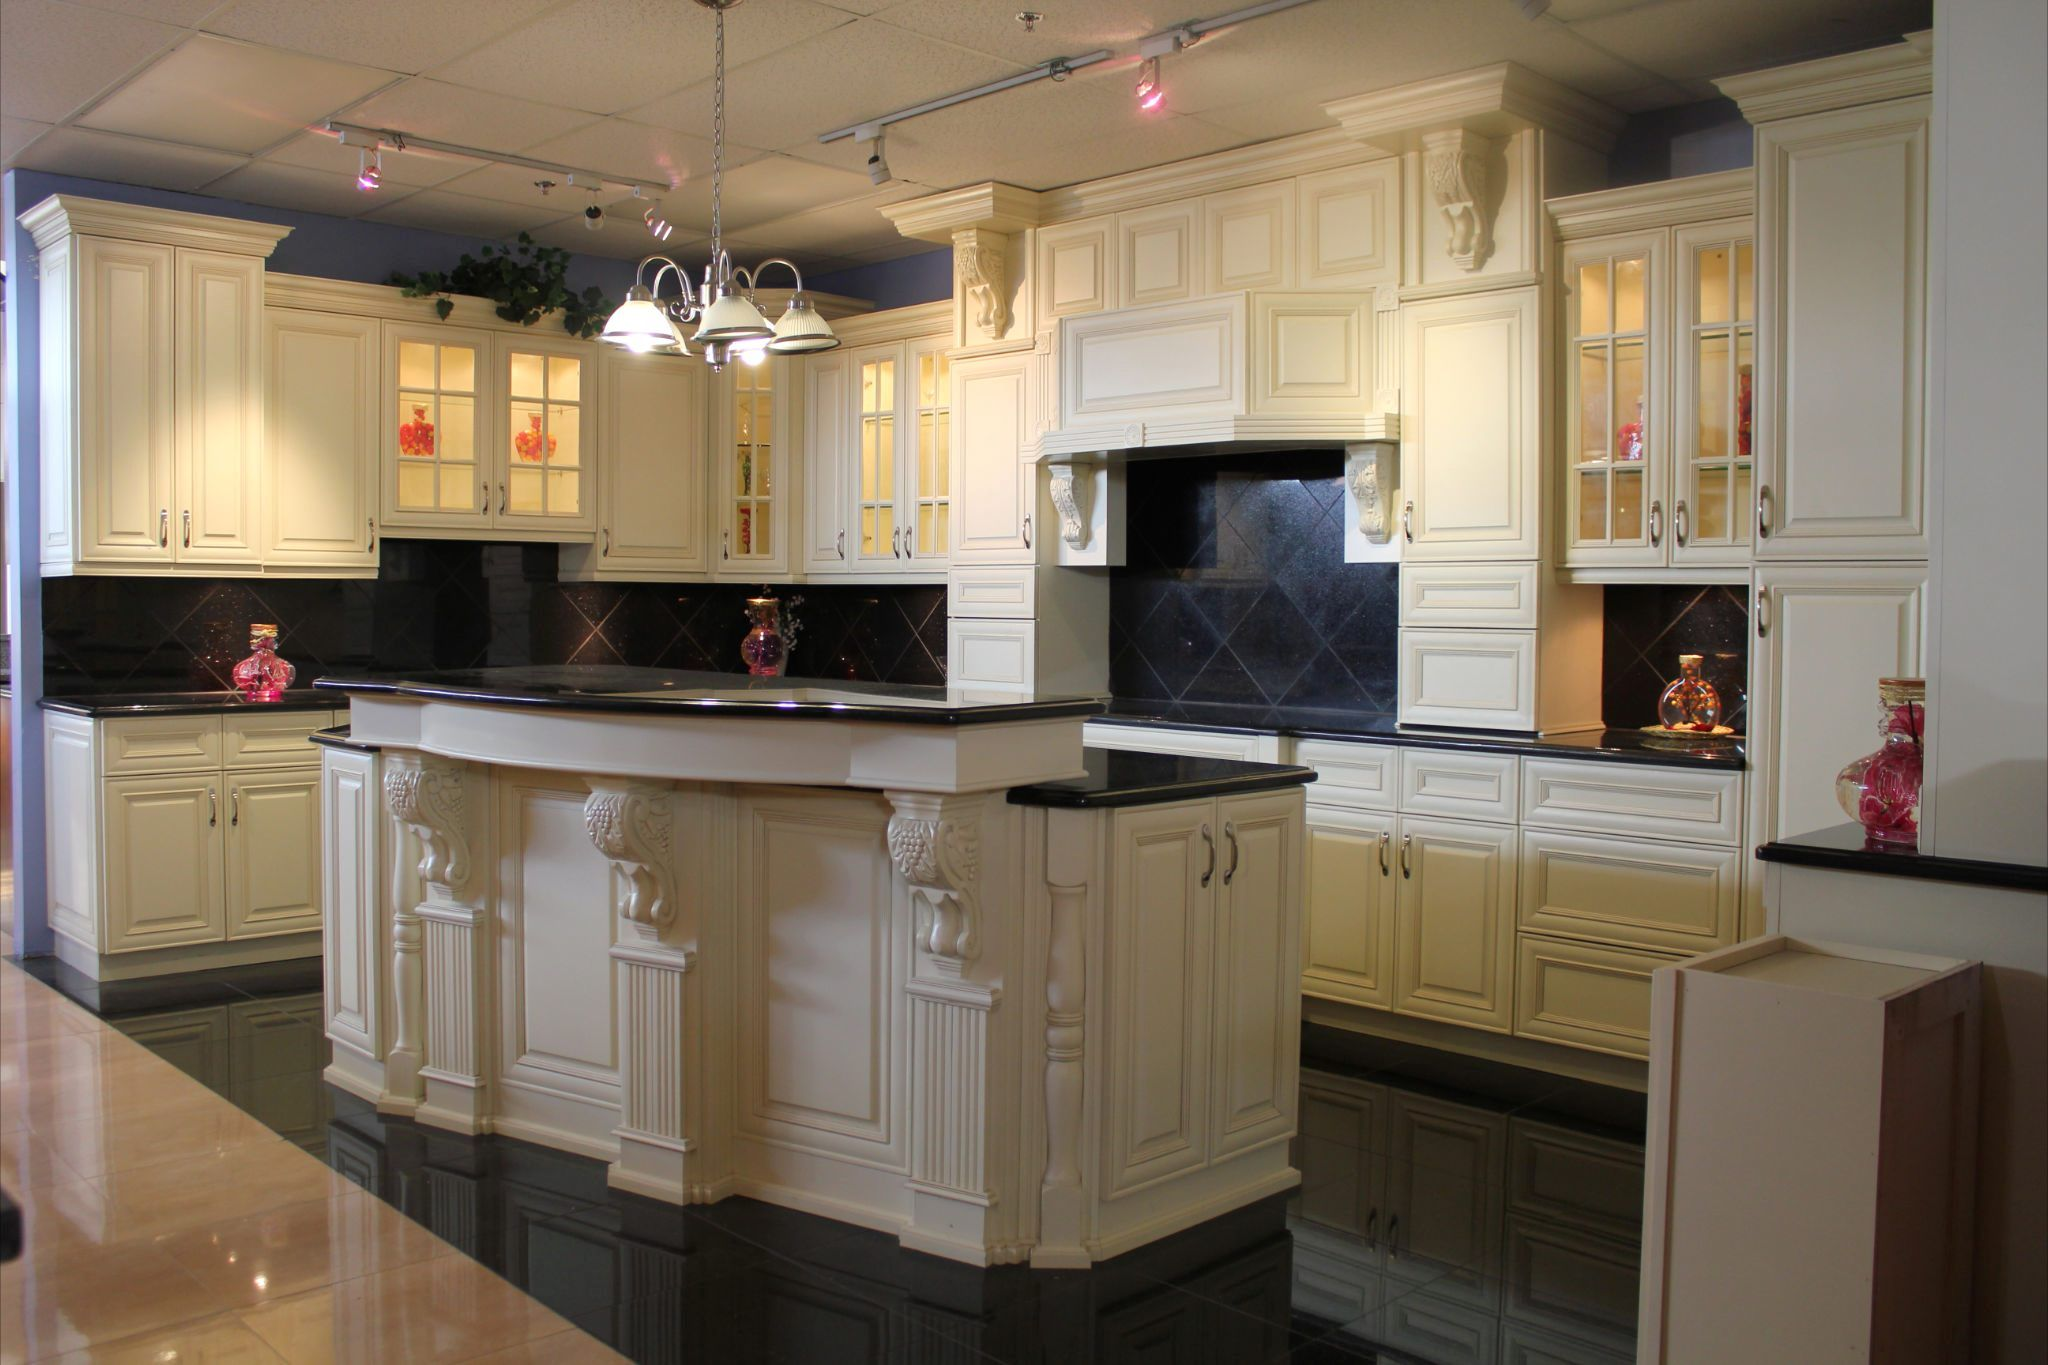 Pin by Cheryl Streeval on KITCHEN Kitchen for